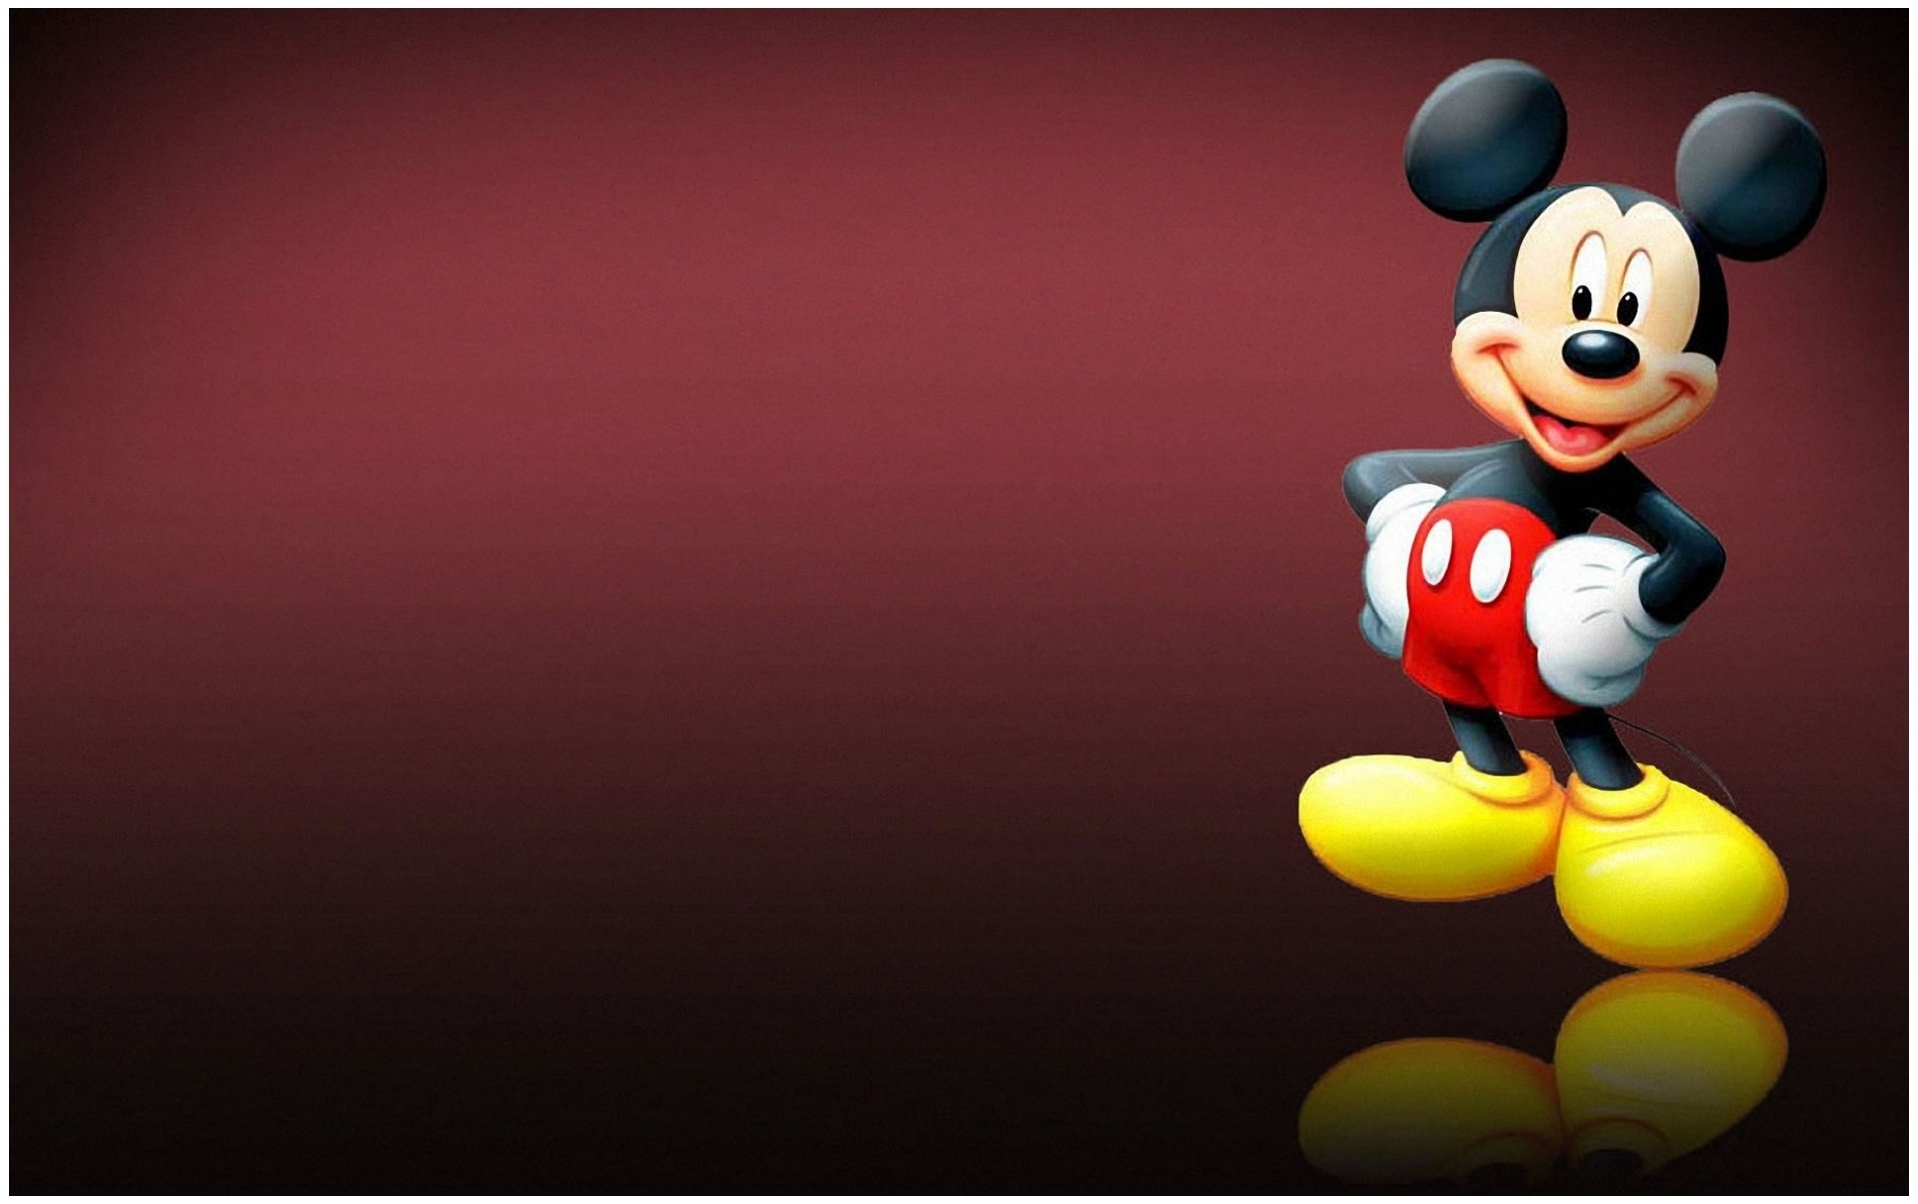 mickey mouse wallpapers and background images - stmed